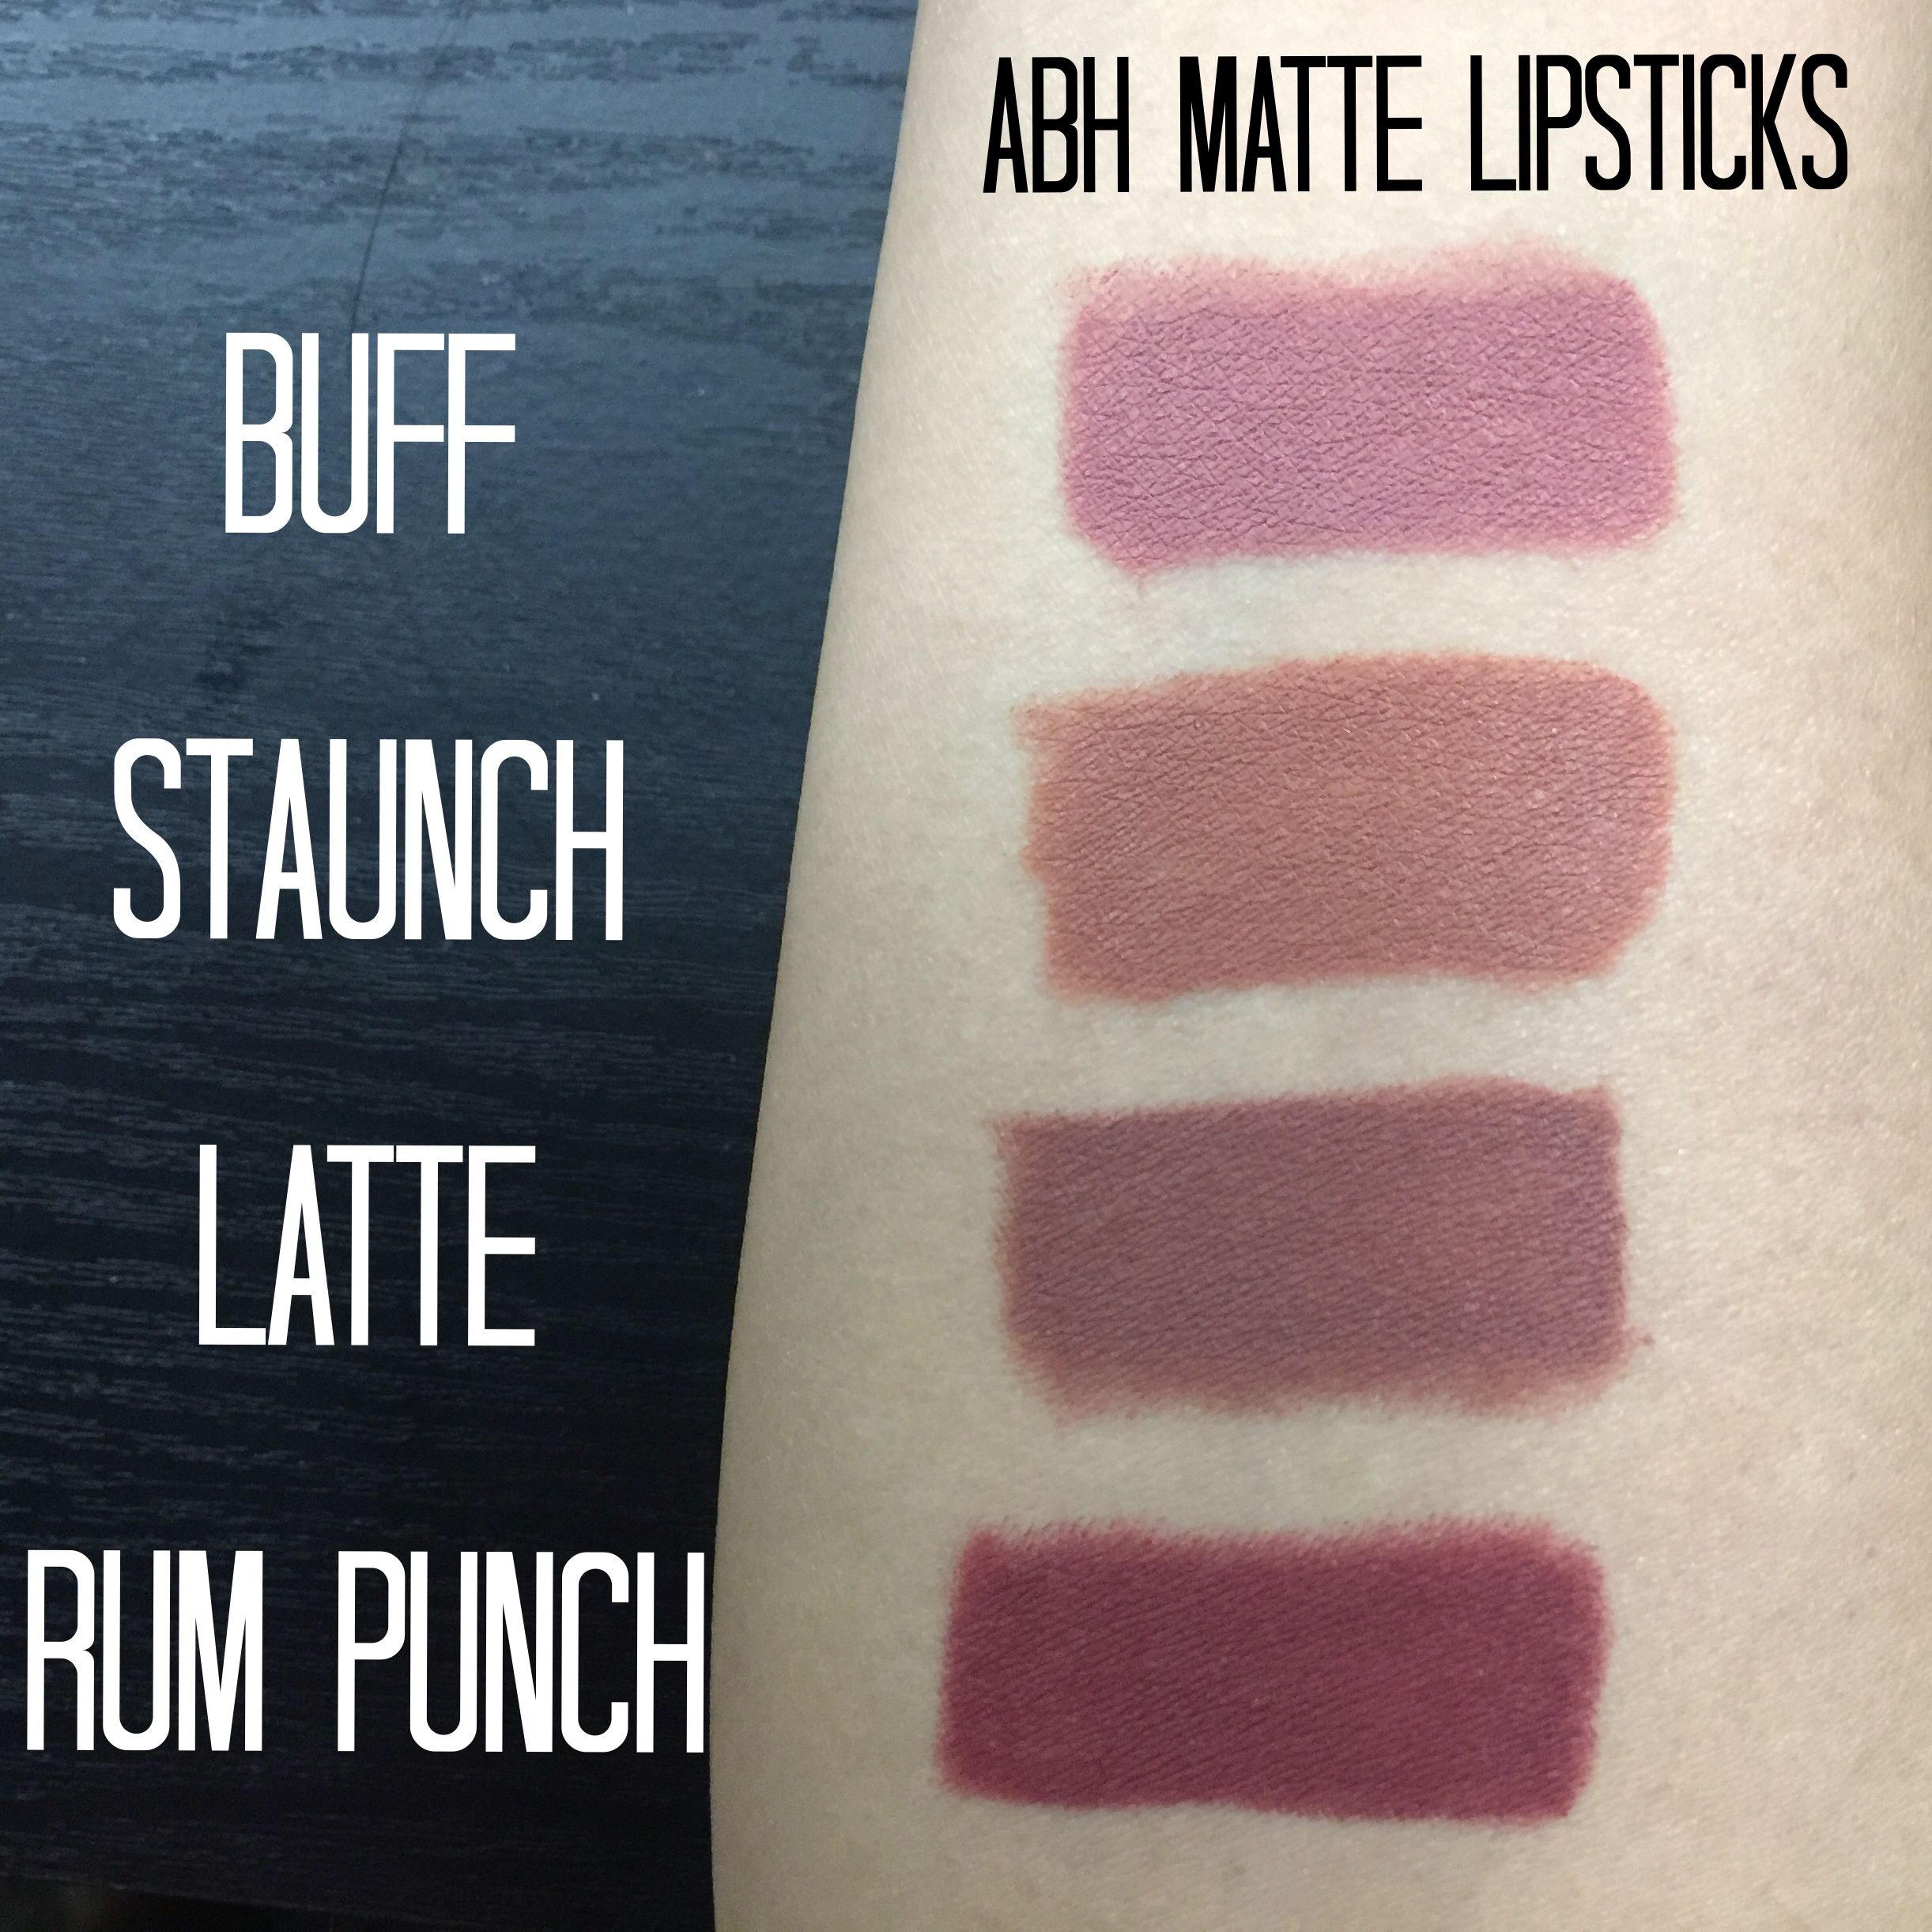 Swatches For Abh Matte Lipsticks Buff Staunch Latte Amp Rum Punch Rum Punch Lipstick Diy Beauty Hacks